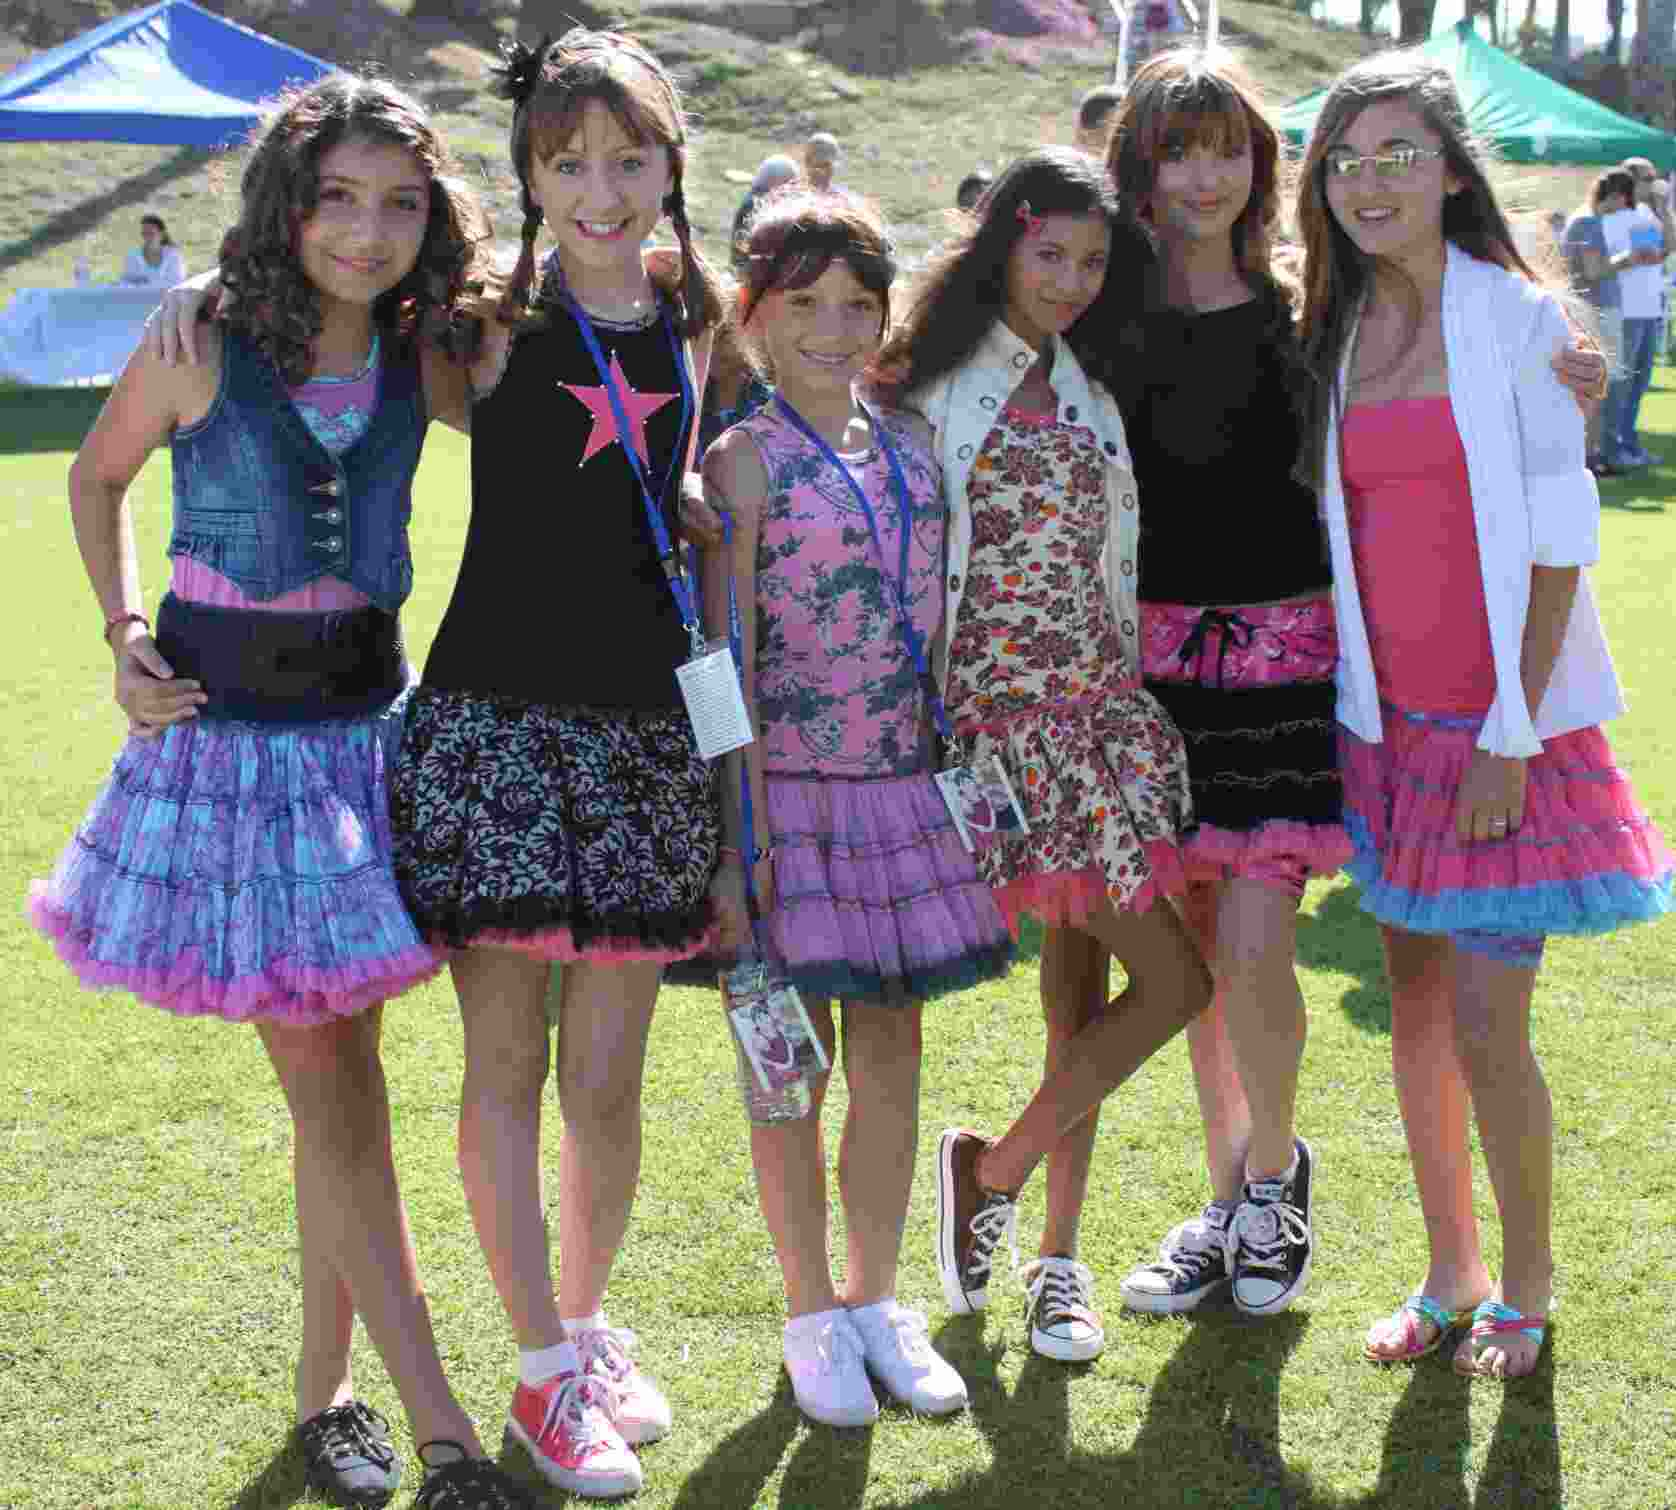 Jennessa Rose, Allisyn Arm,Madison Liesle,Olivia Grace, Bella Thorne